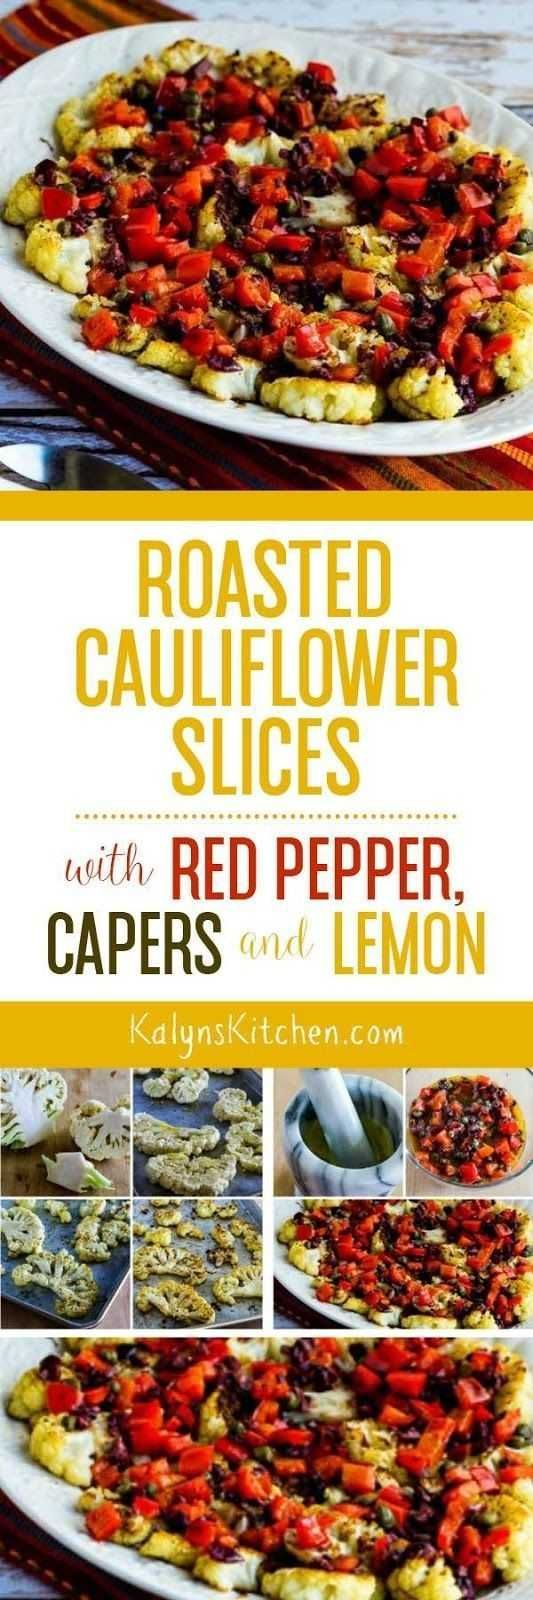 love these Roasted Cauliflower Slices with Red Pepper Capers and Lemon for Id love these Roasted Cauliflower Slices with Red Pepper Capers and Lemon for